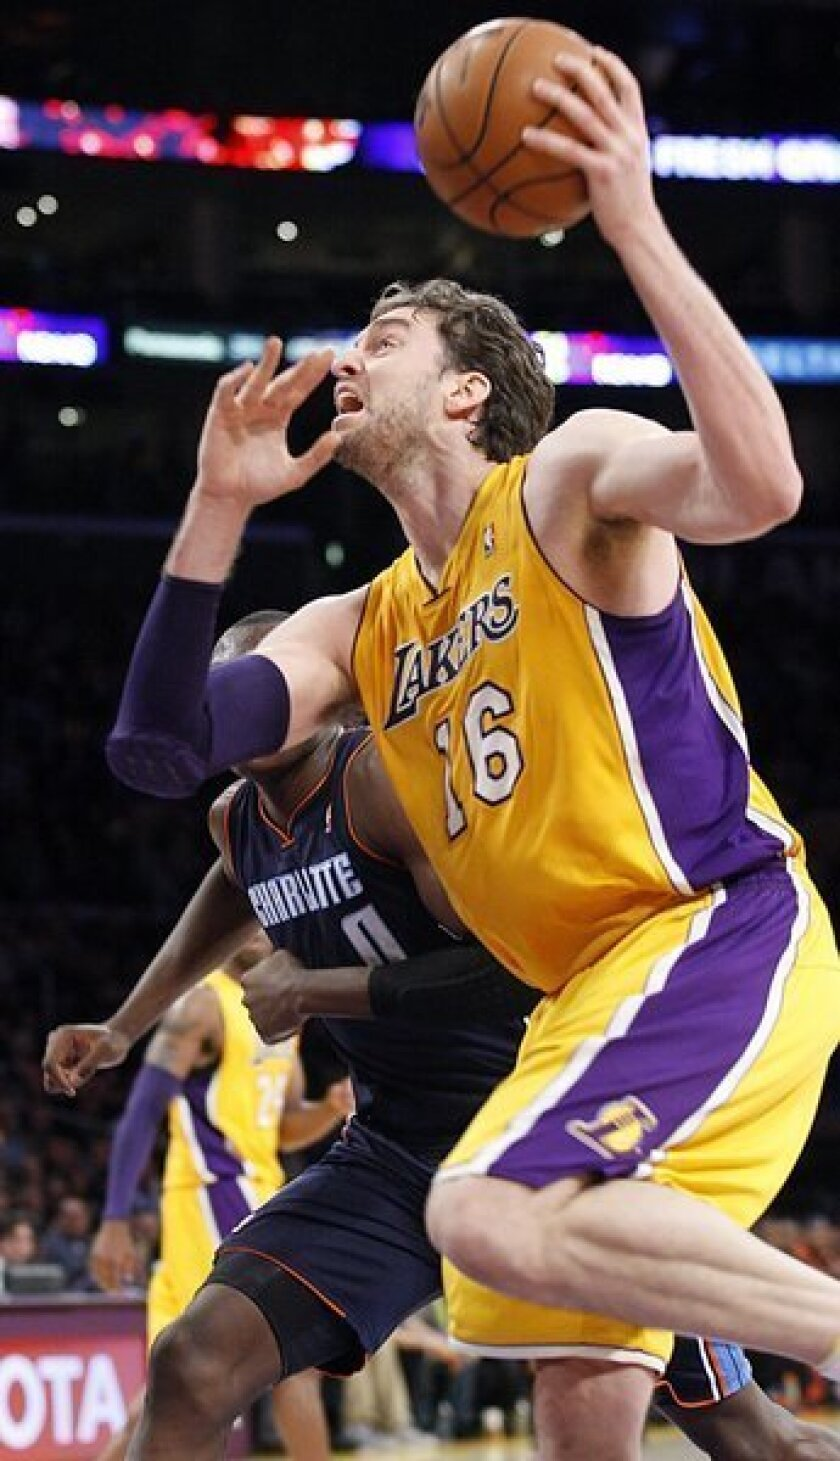 Pau Gasol drives to the basket against the Bobcats.